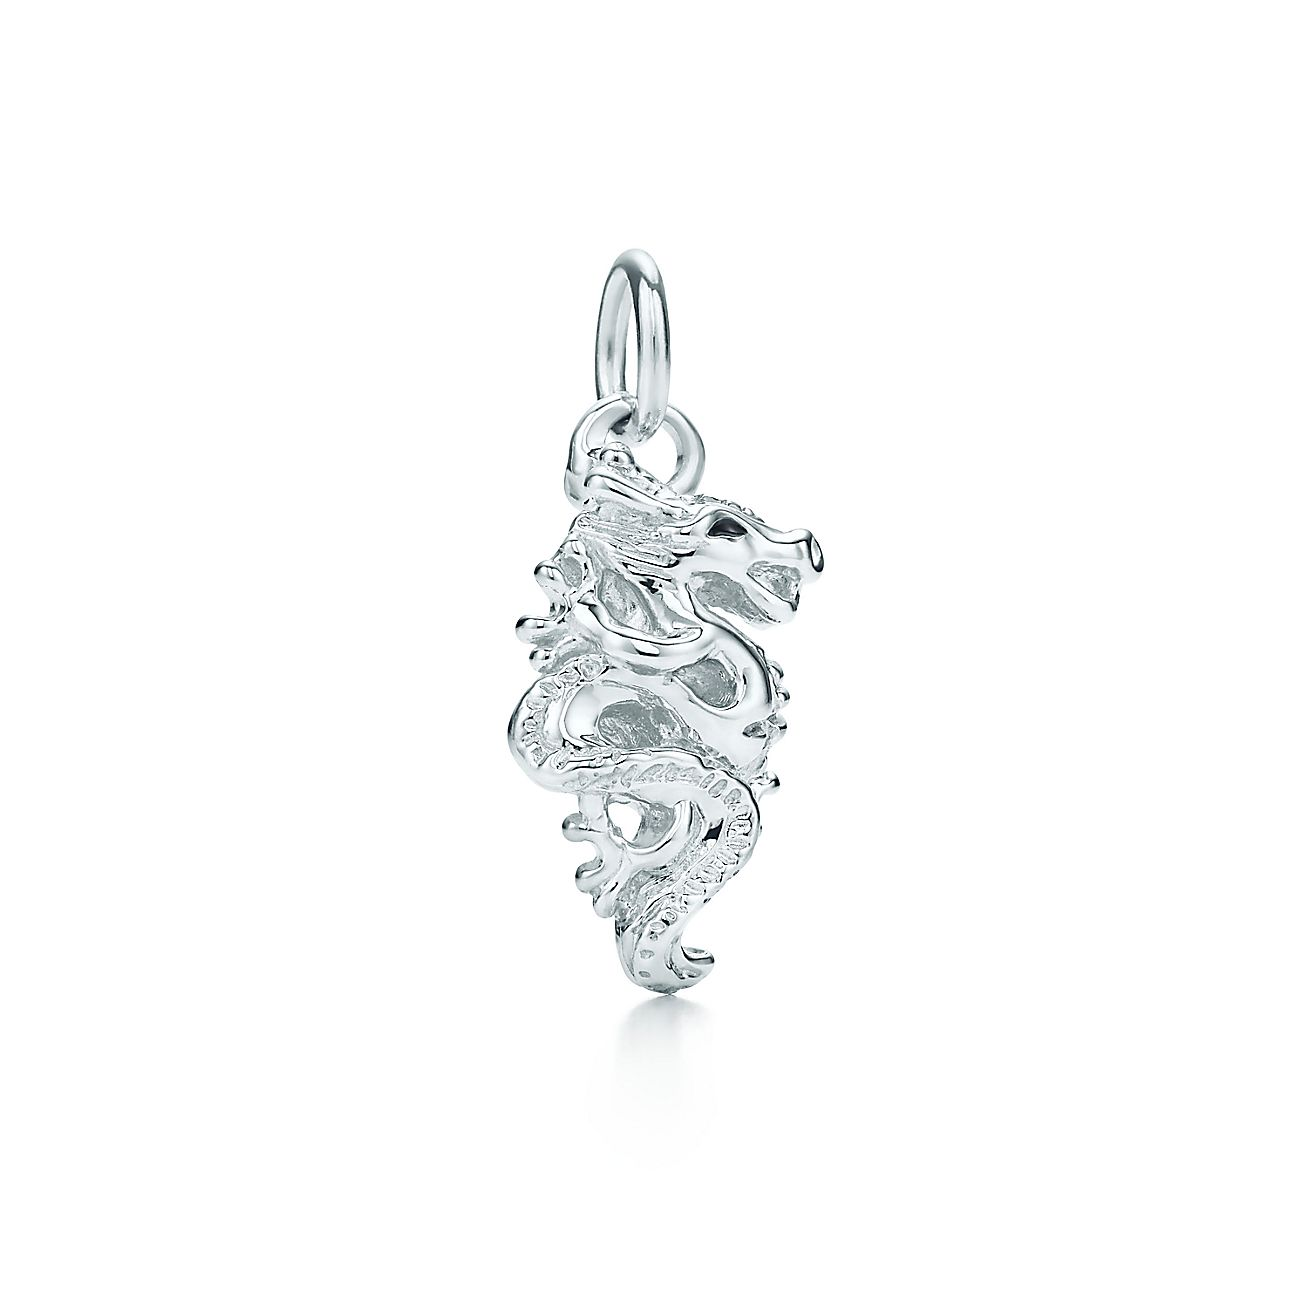 Paloma's Chinese Zodiac dragon charm in sterling silver